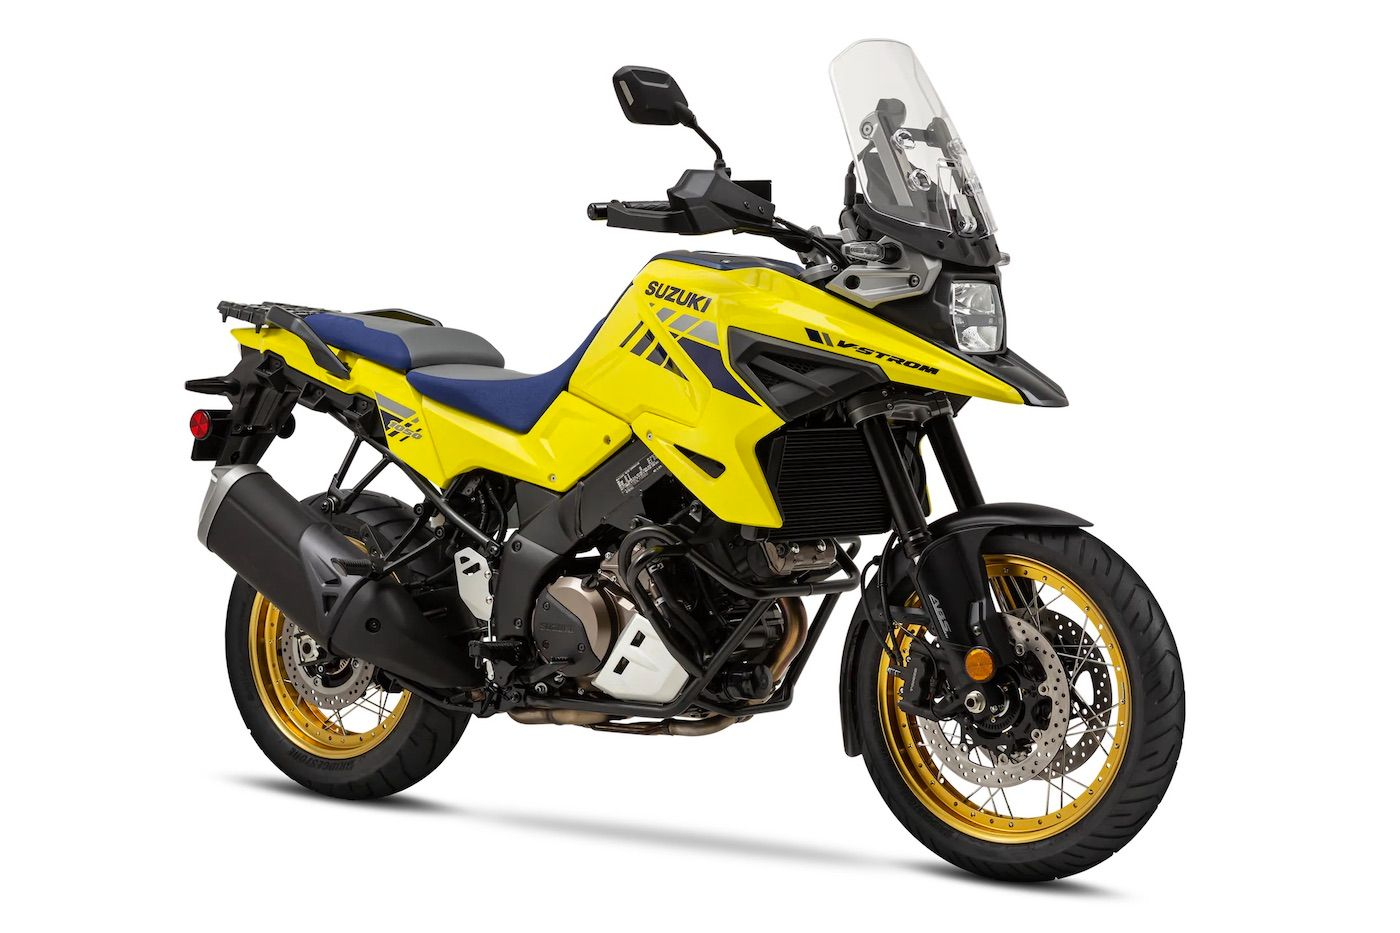 A beautiful V-Strom? Yes, the 2020 V-Strom 1050 XT Adventure